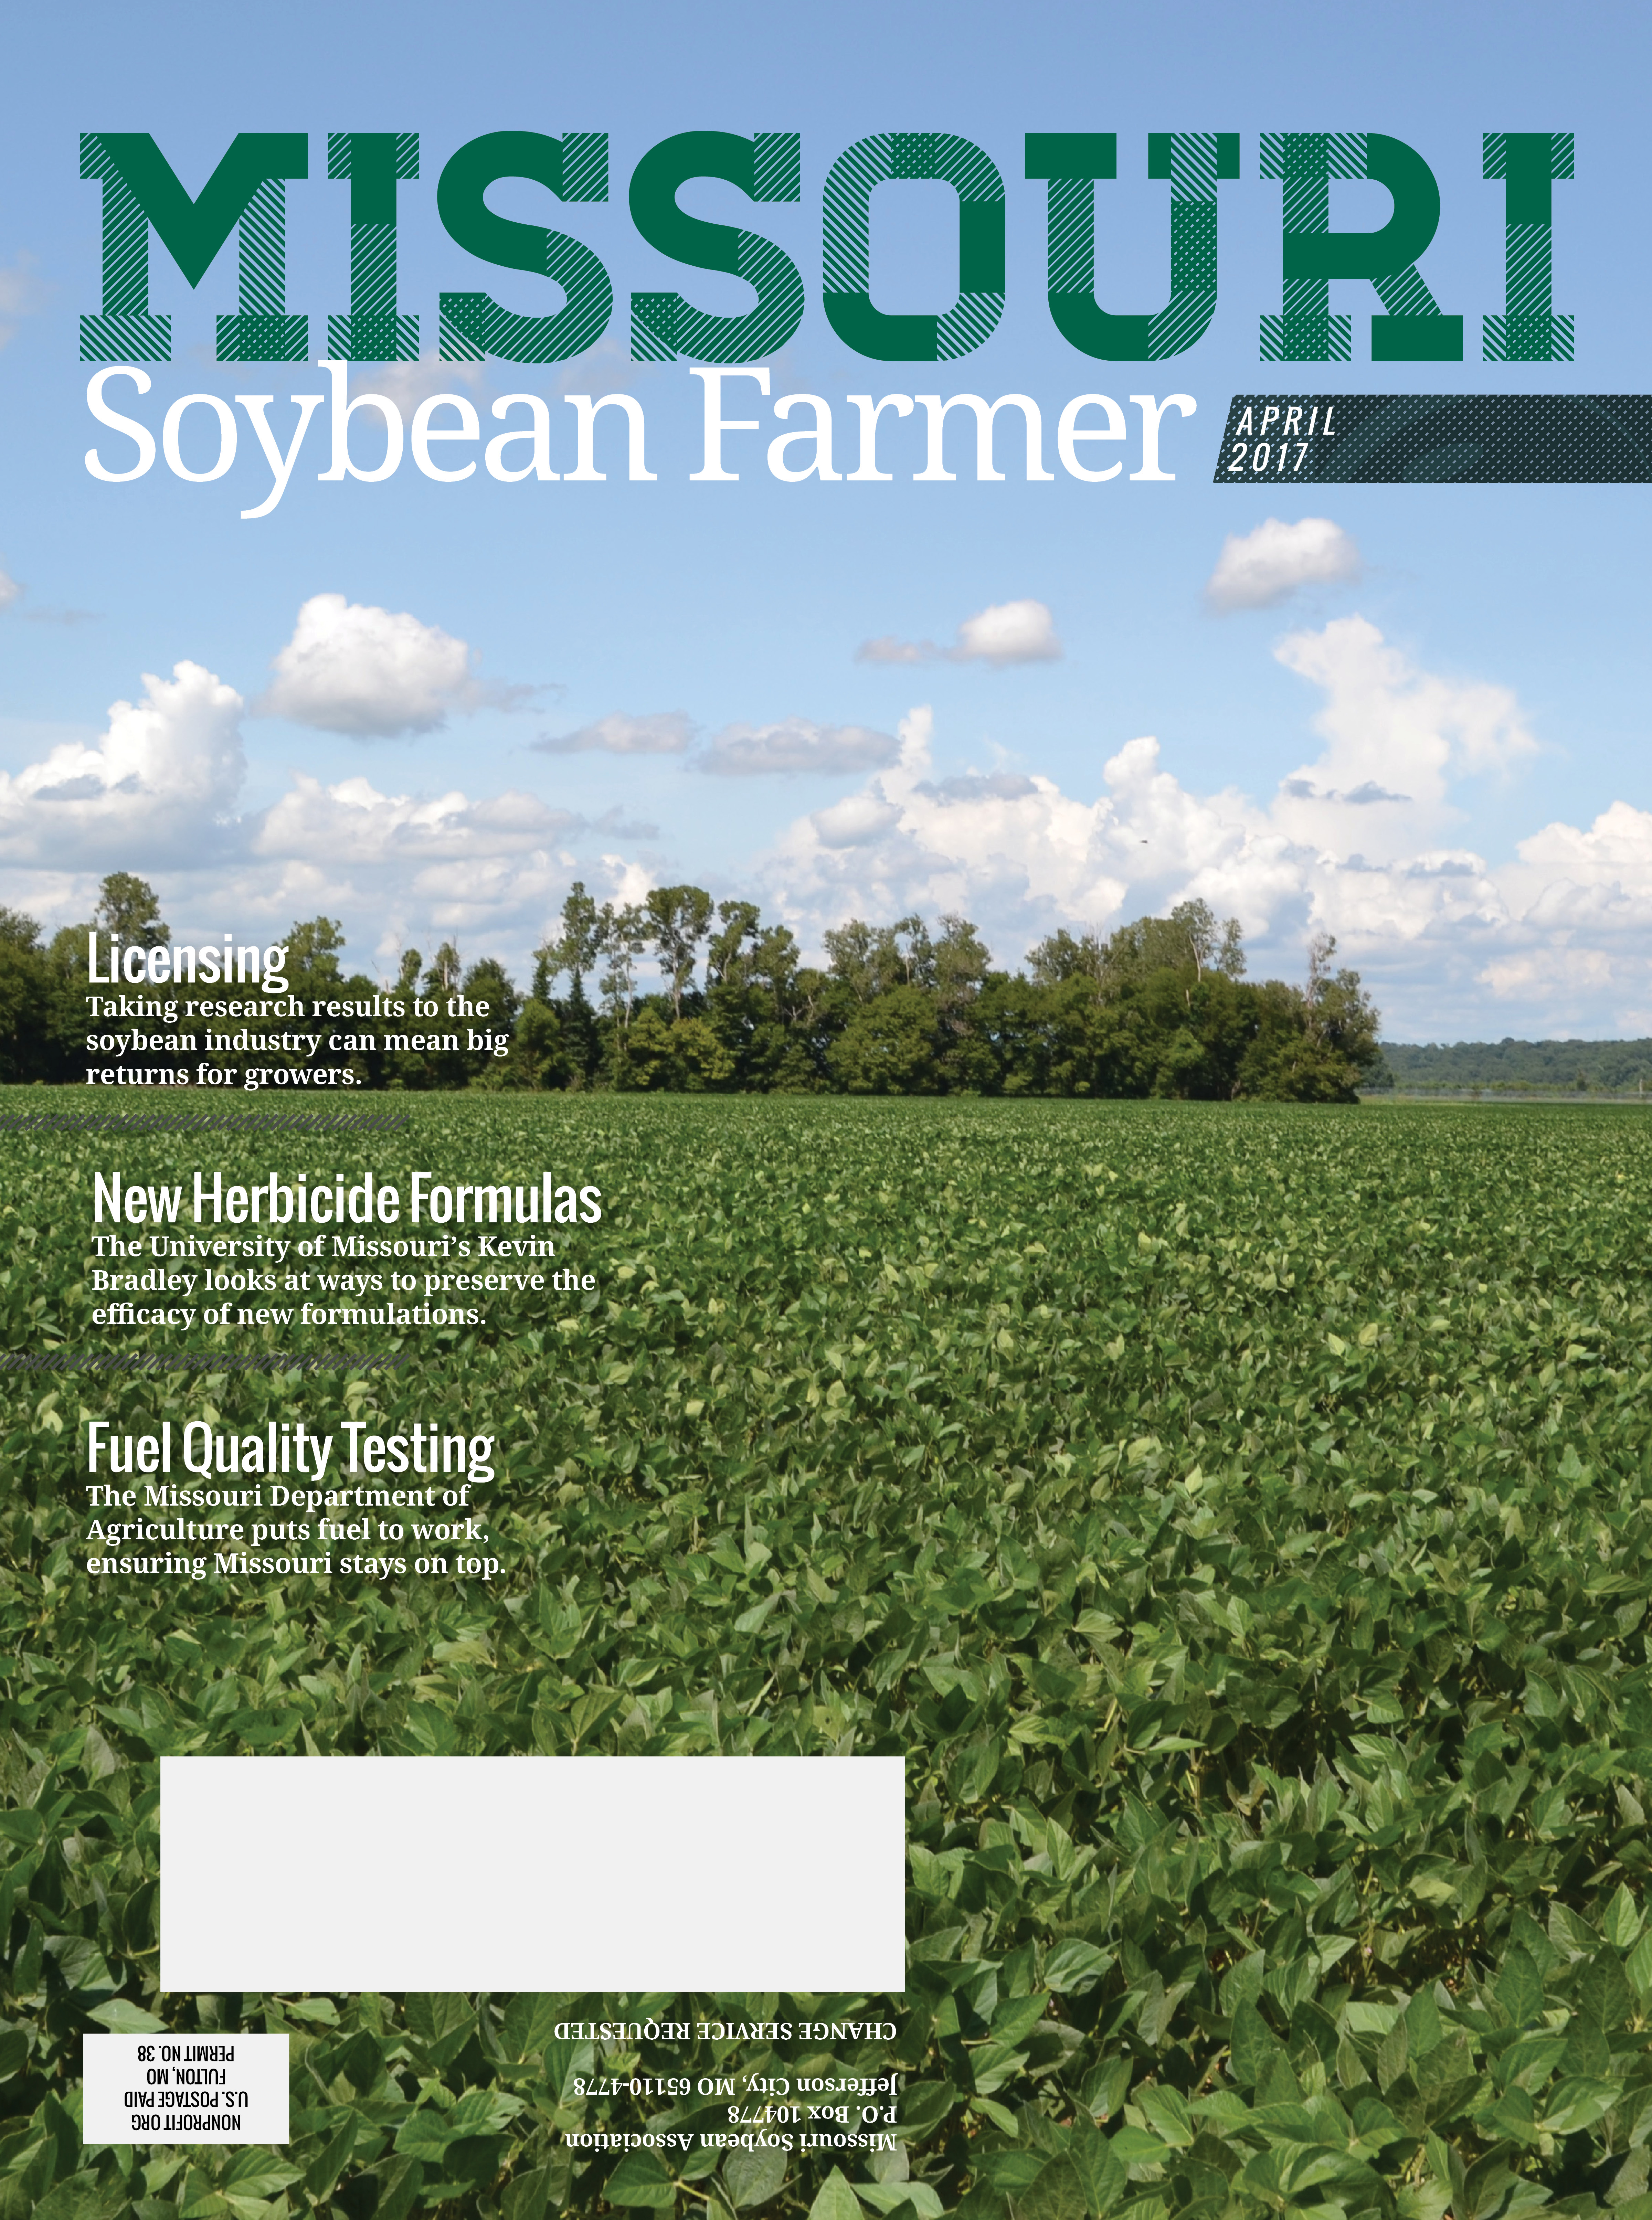 Missouri Soybean Farmer April 2017 Issue Online Now